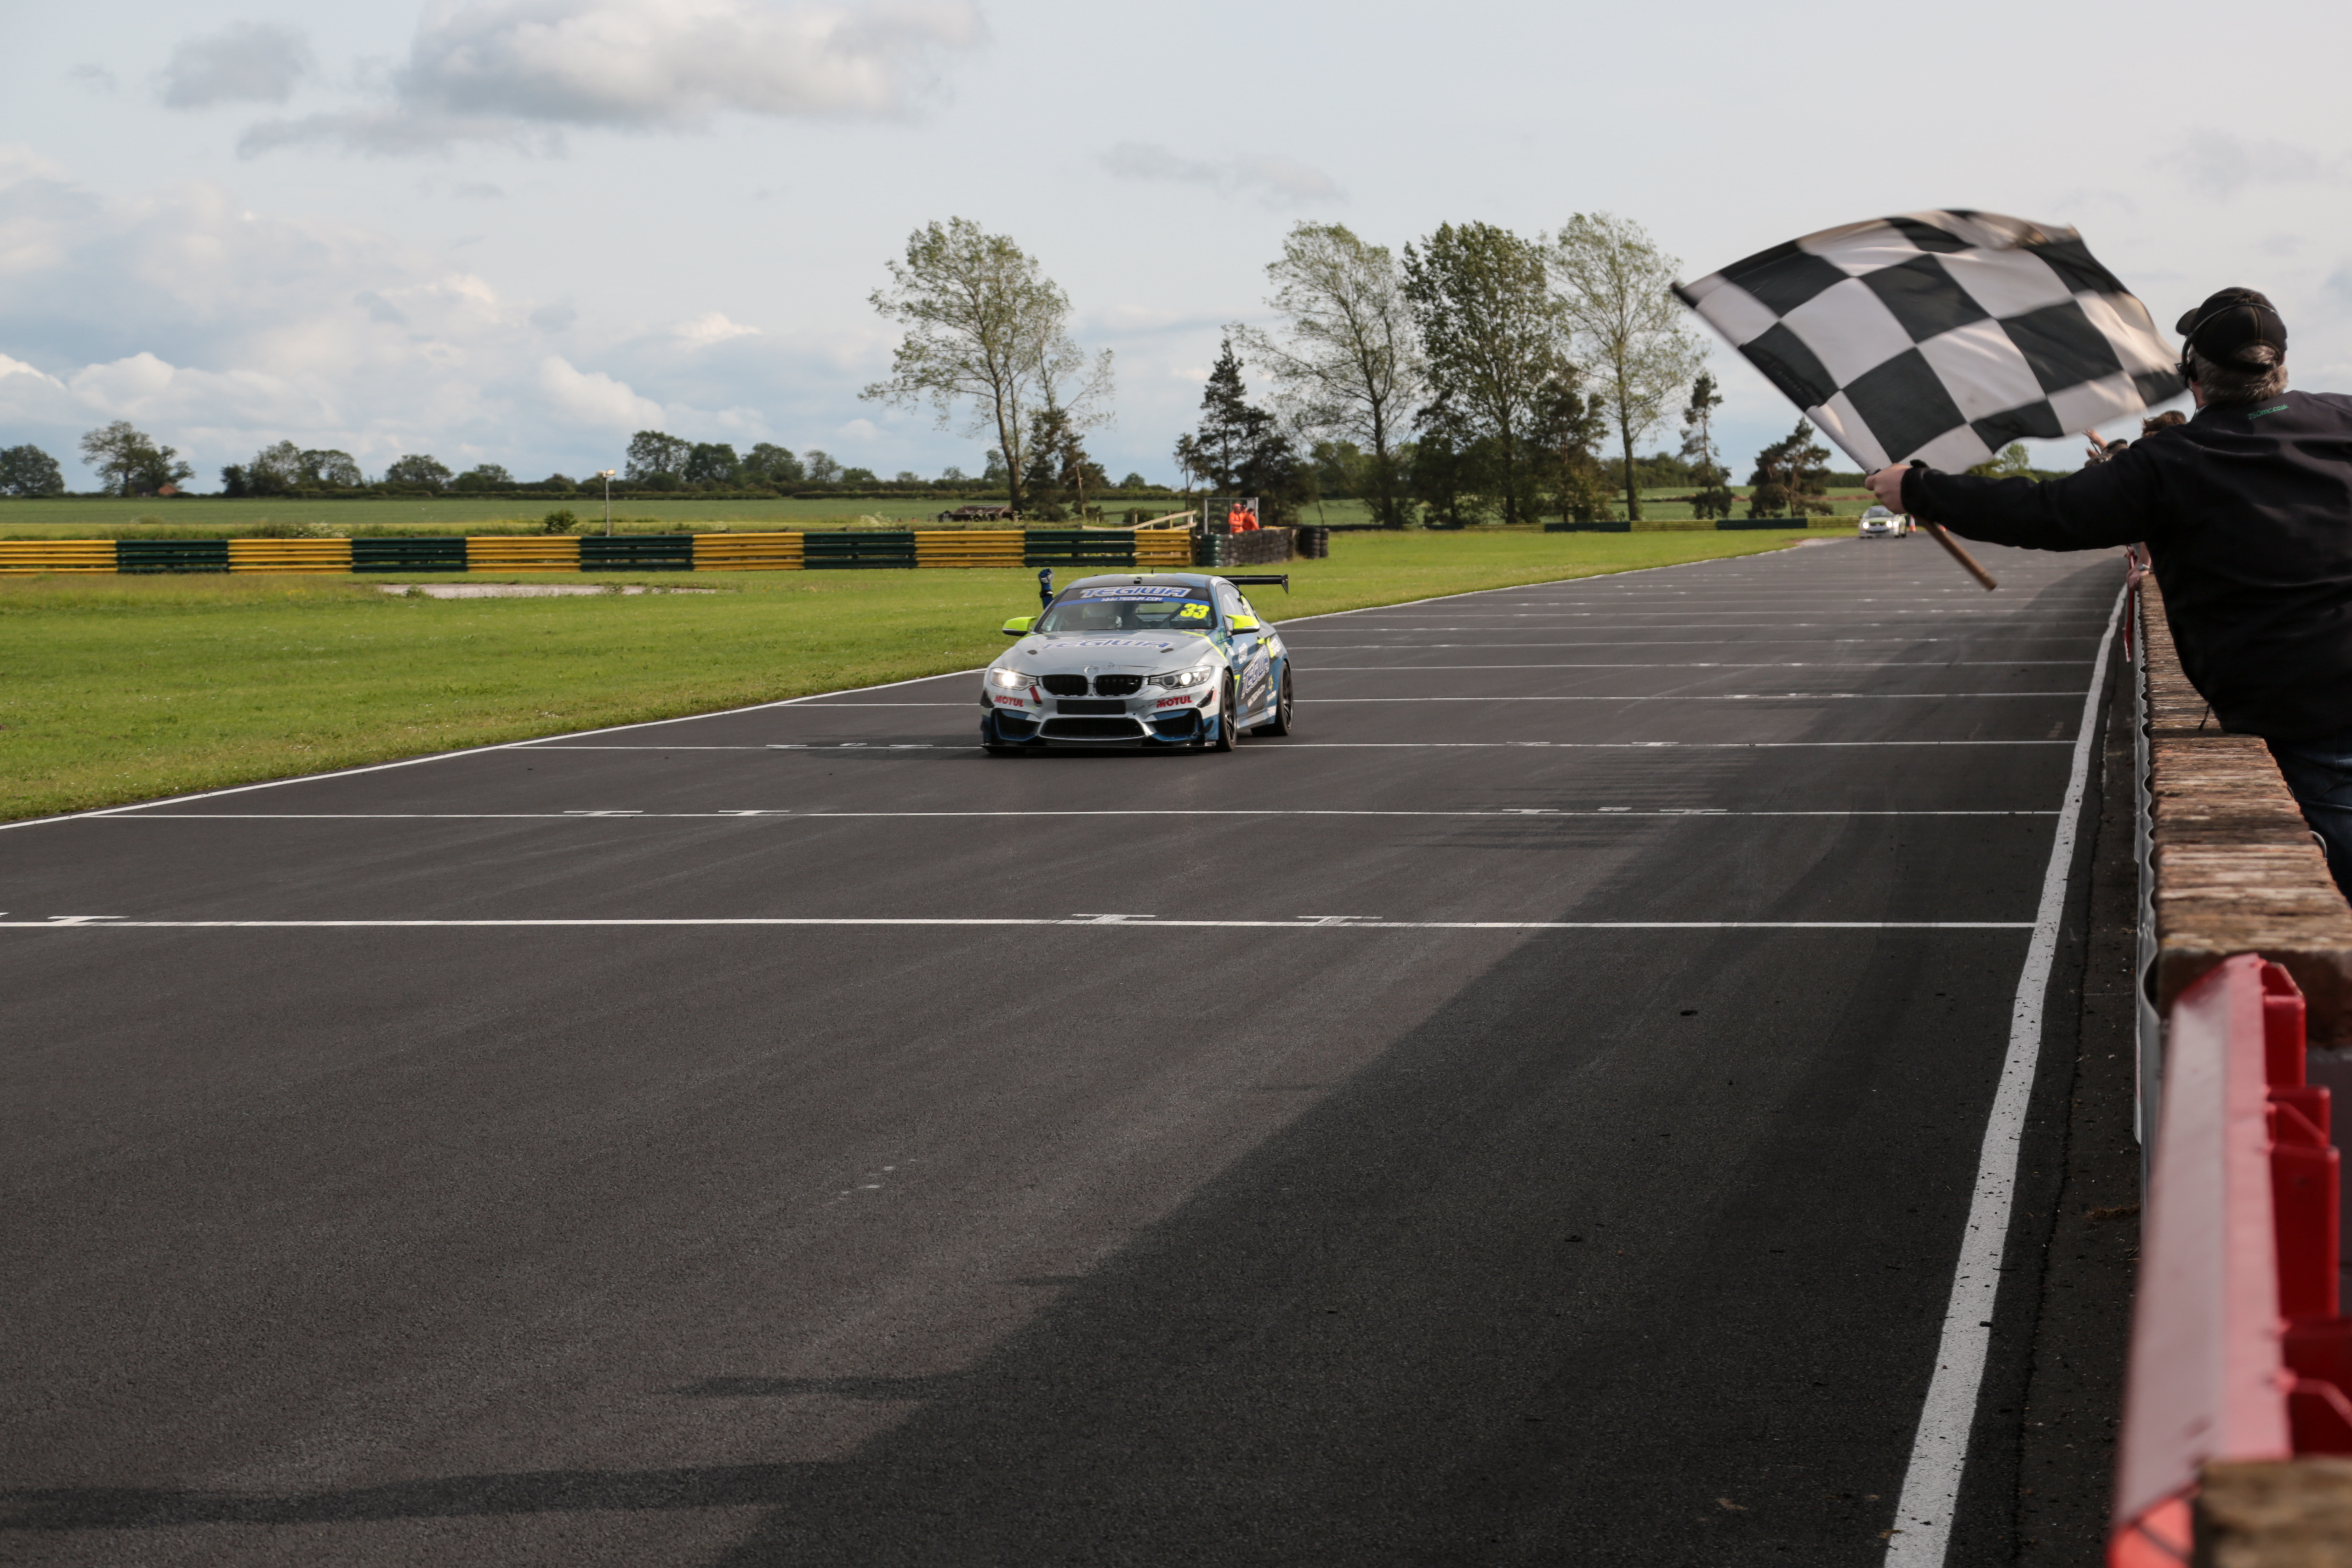 Tegiwa M4 Chequered Flag